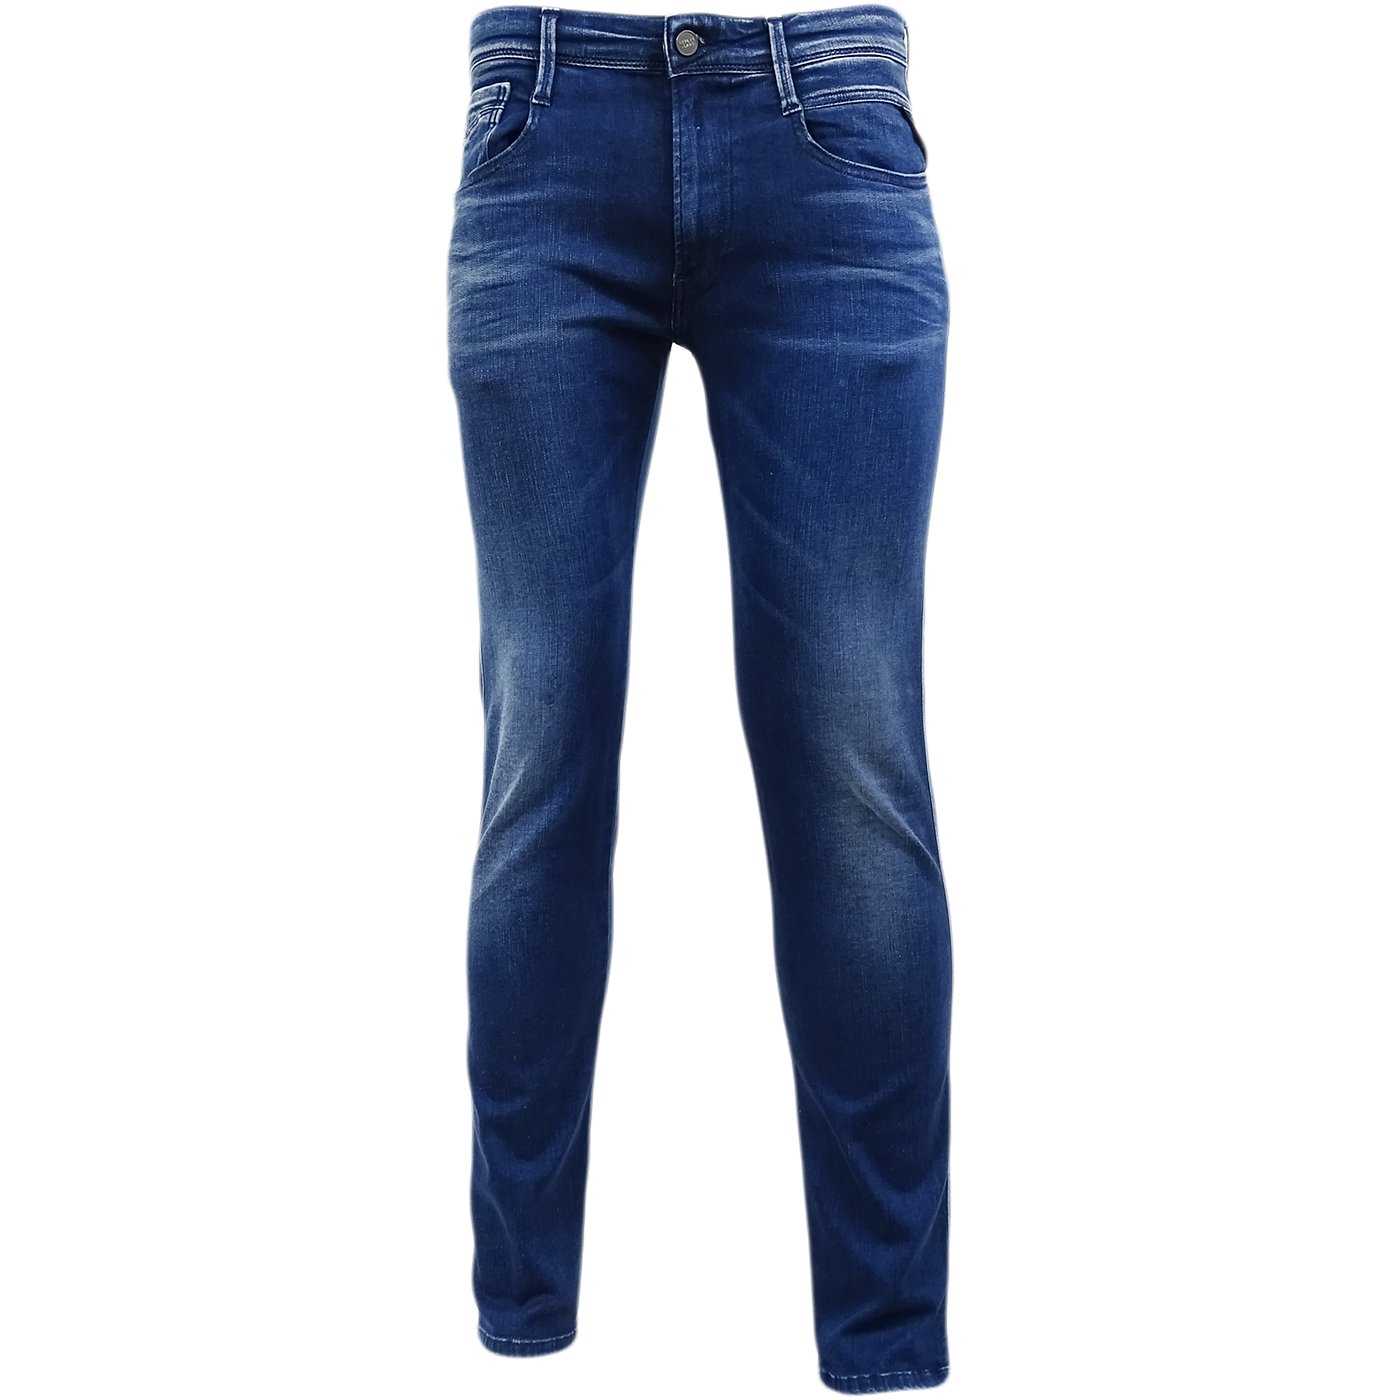 Replay Blue Anbass' Slim Fit Denim Pant Jean / Denim Pants - M914-93A-007 36/32